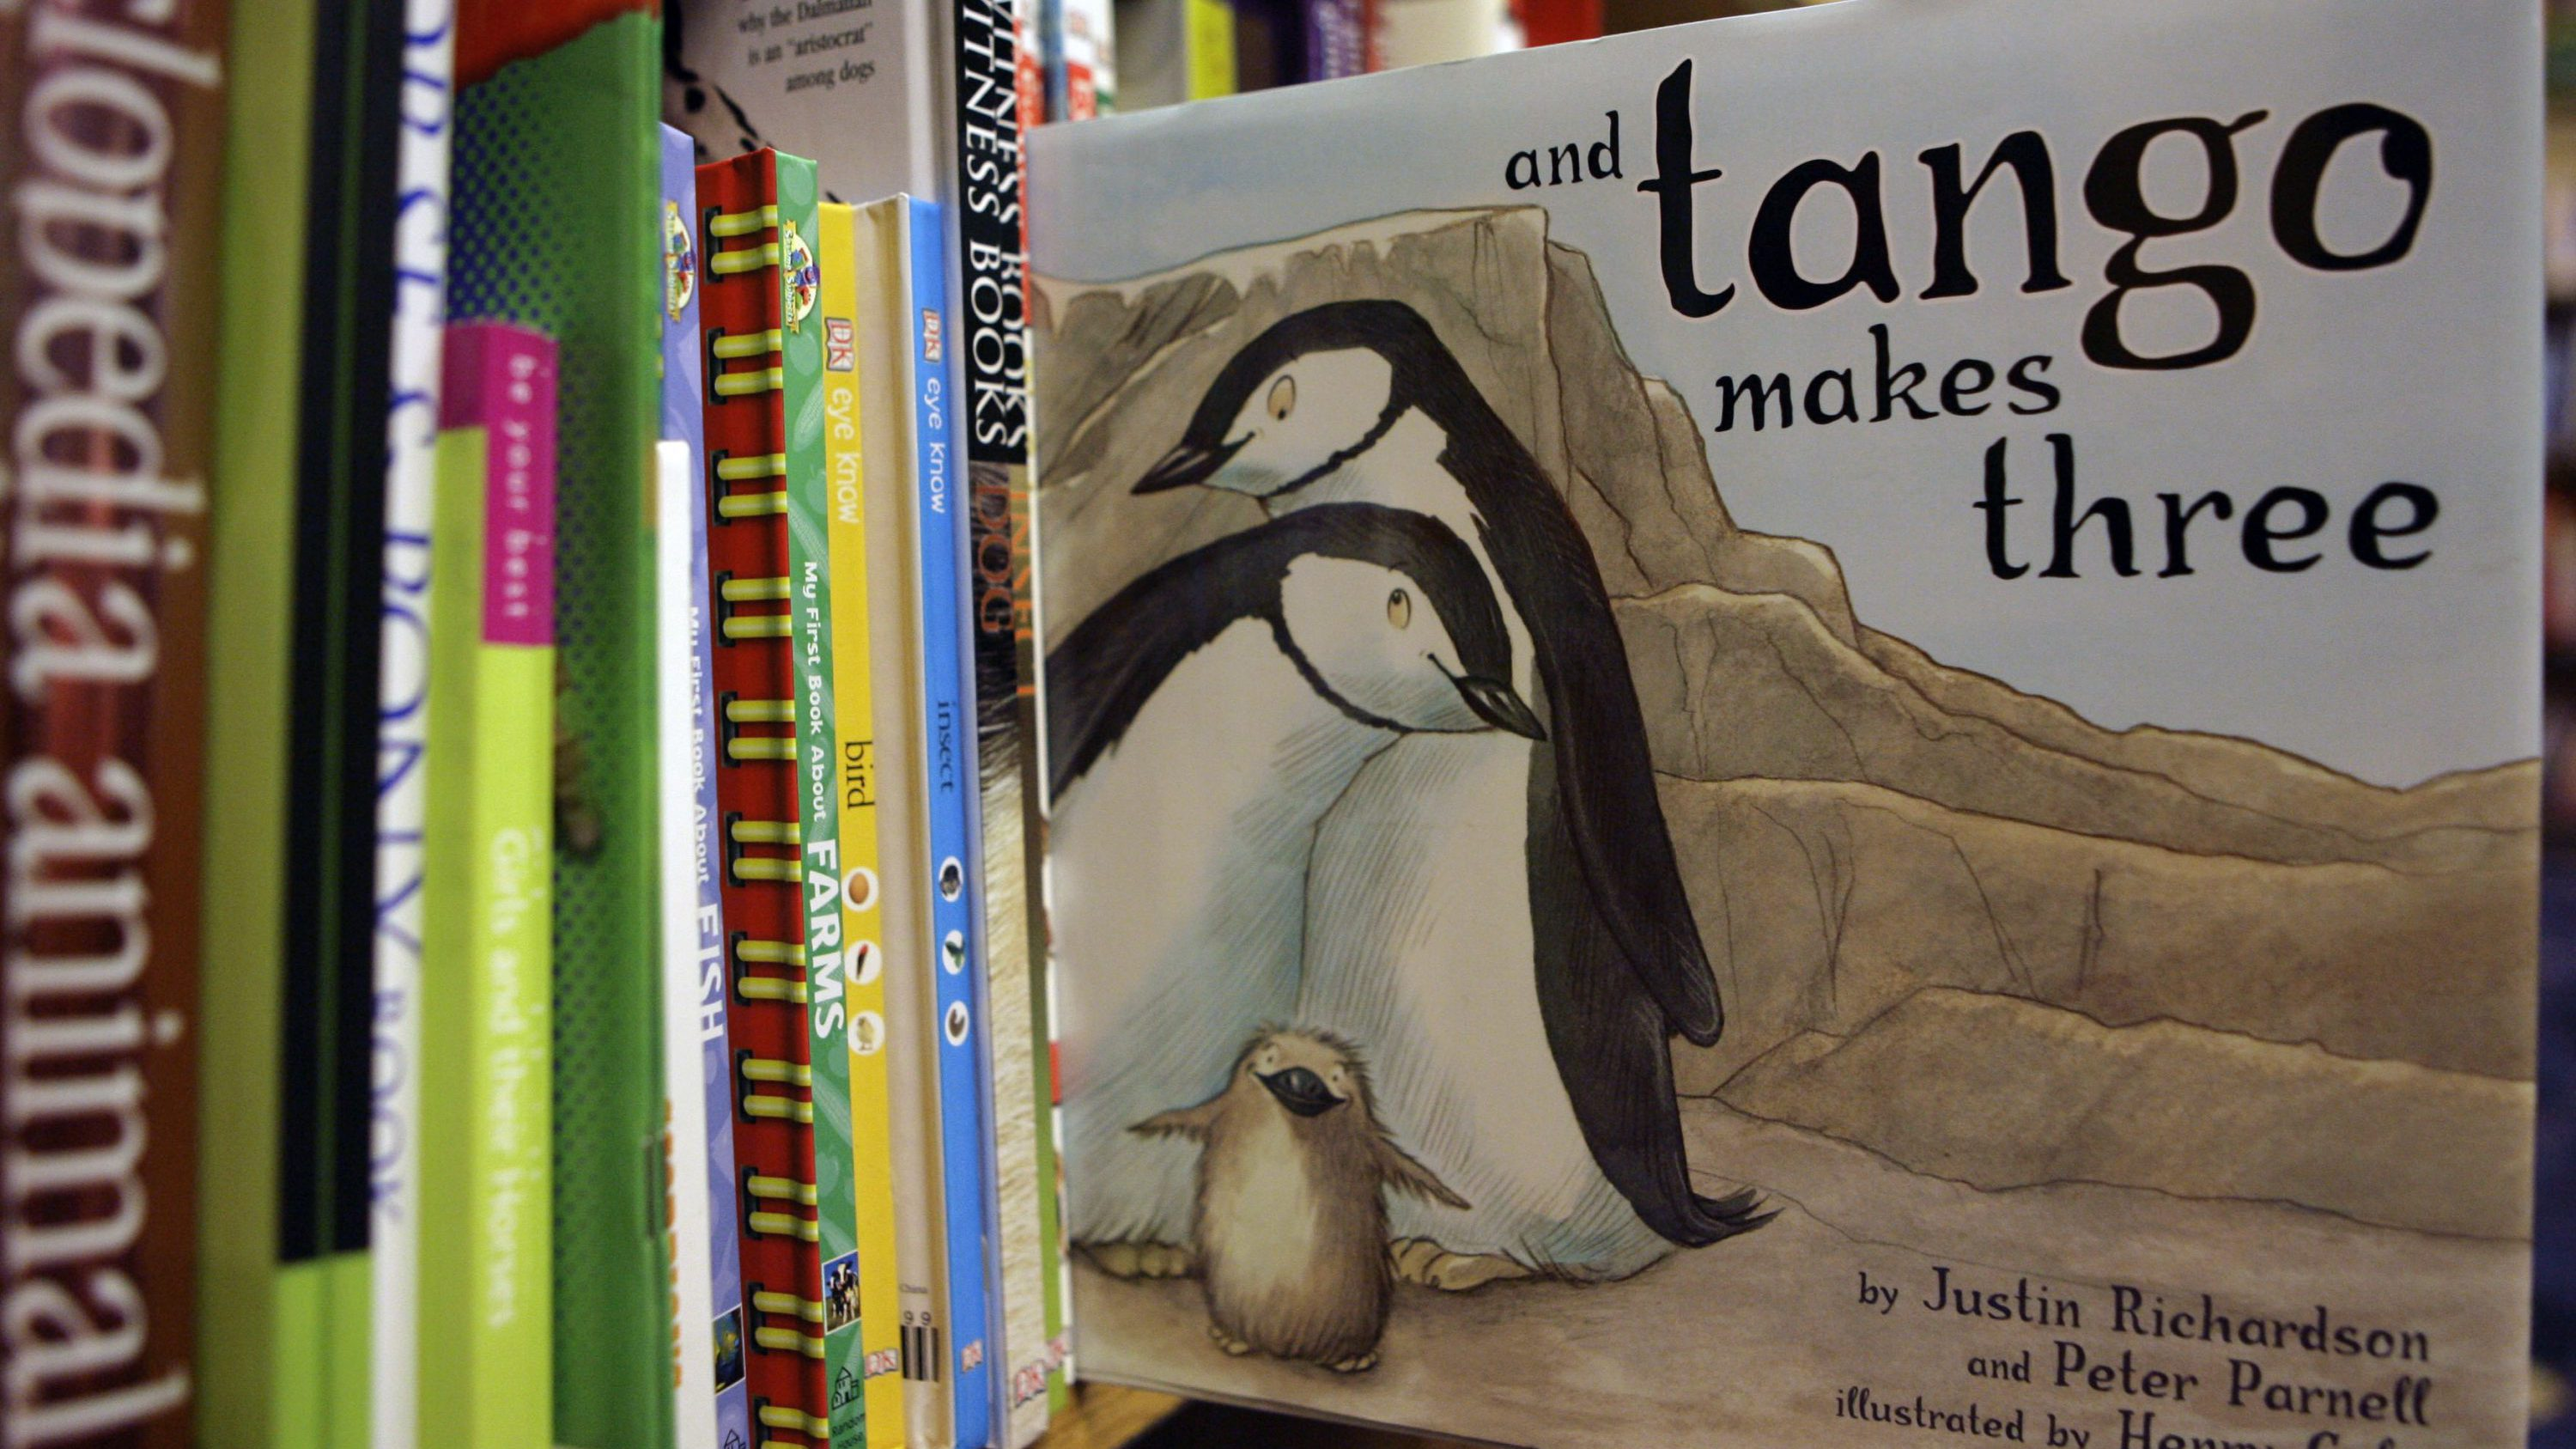 The picture book based on a true story about two male penguins that raise an adopted hatchling together has been ordered off bookshelves in the Charlotte-Mecklenburg Schools in North Carolina after parent inquiries, officials said. The ban came in a Nov. 30 memo from district administrators to school principals and library staff.